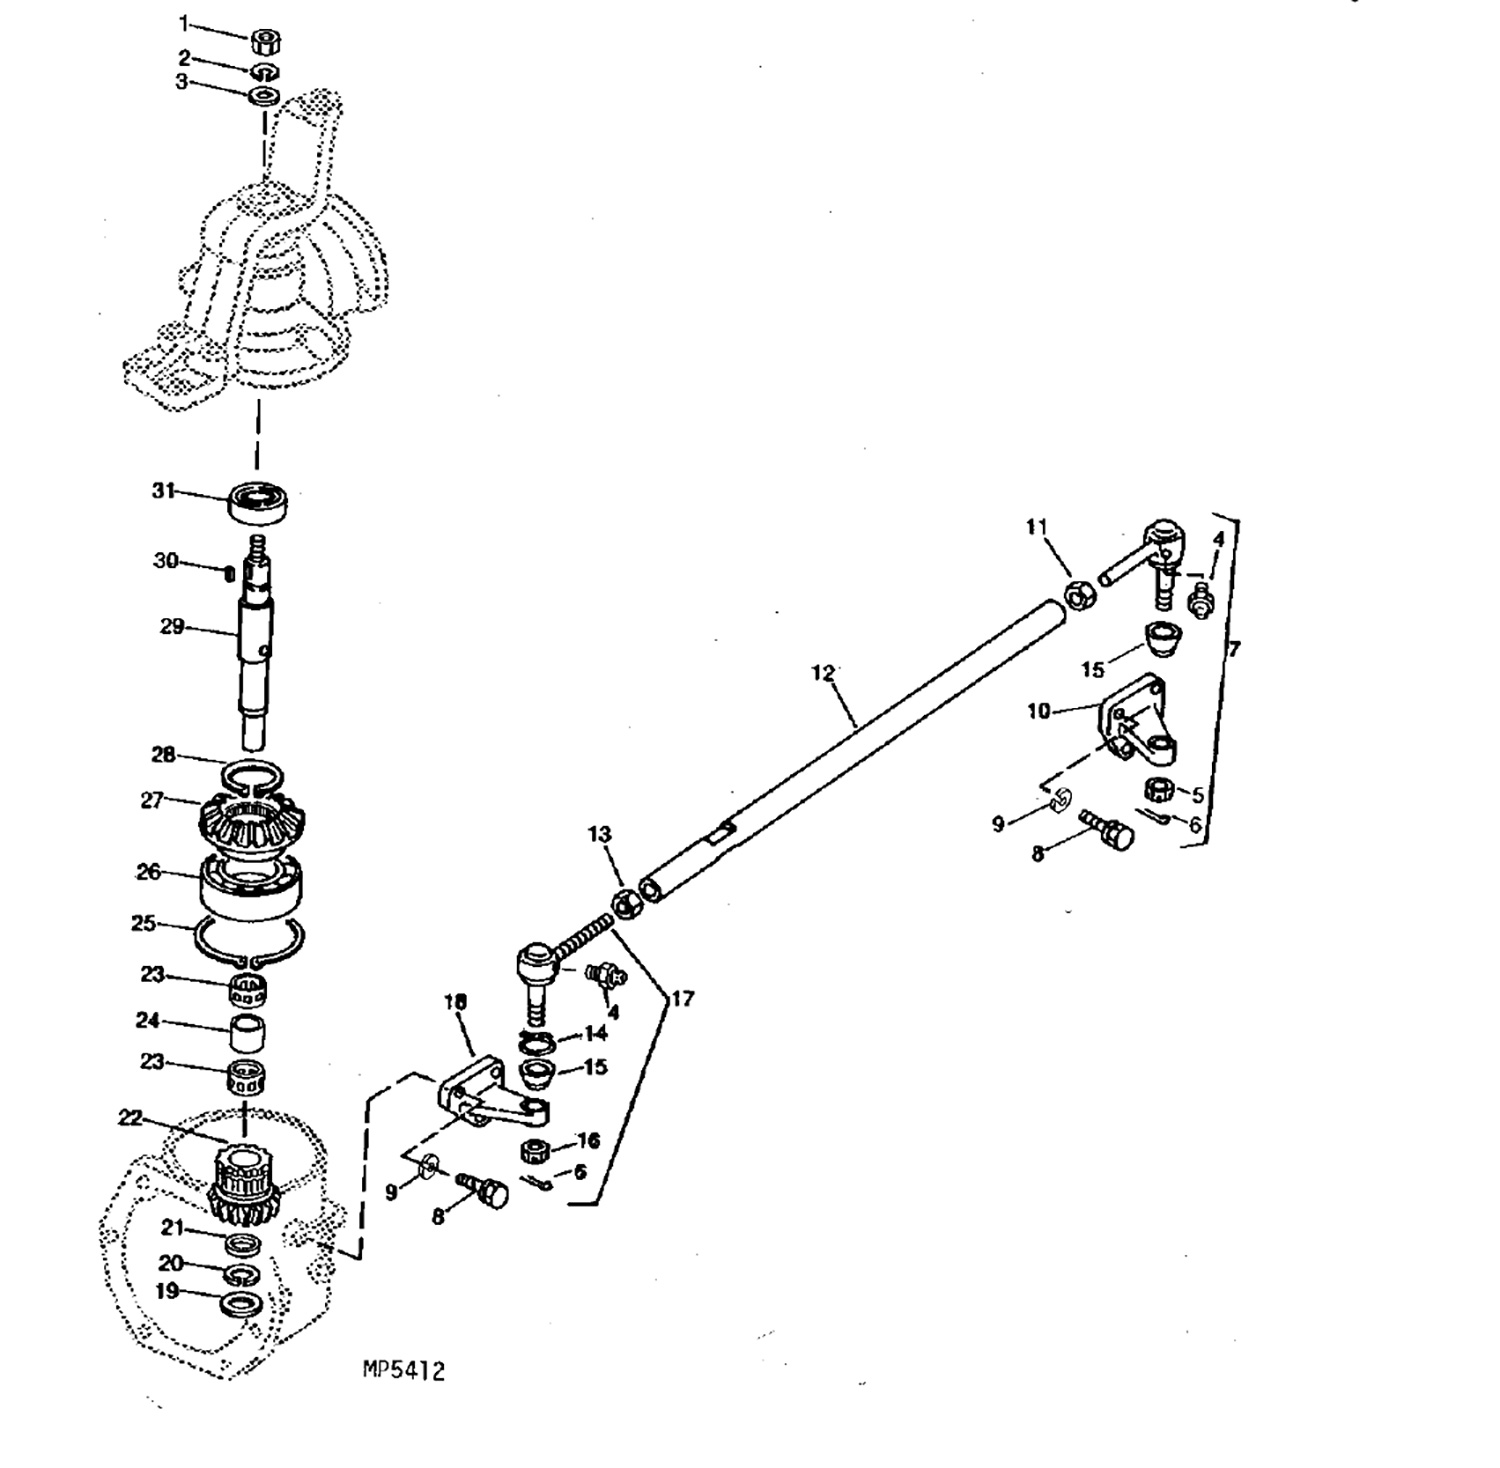 5 7 V8 Chevy Engine Diagram also P 0996b43f81b3db78 likewise Engine Torque Spec Chart as well Jeep 4 0l Fuel Rail in addition RepairGuideContent. on small block chevy engine specs